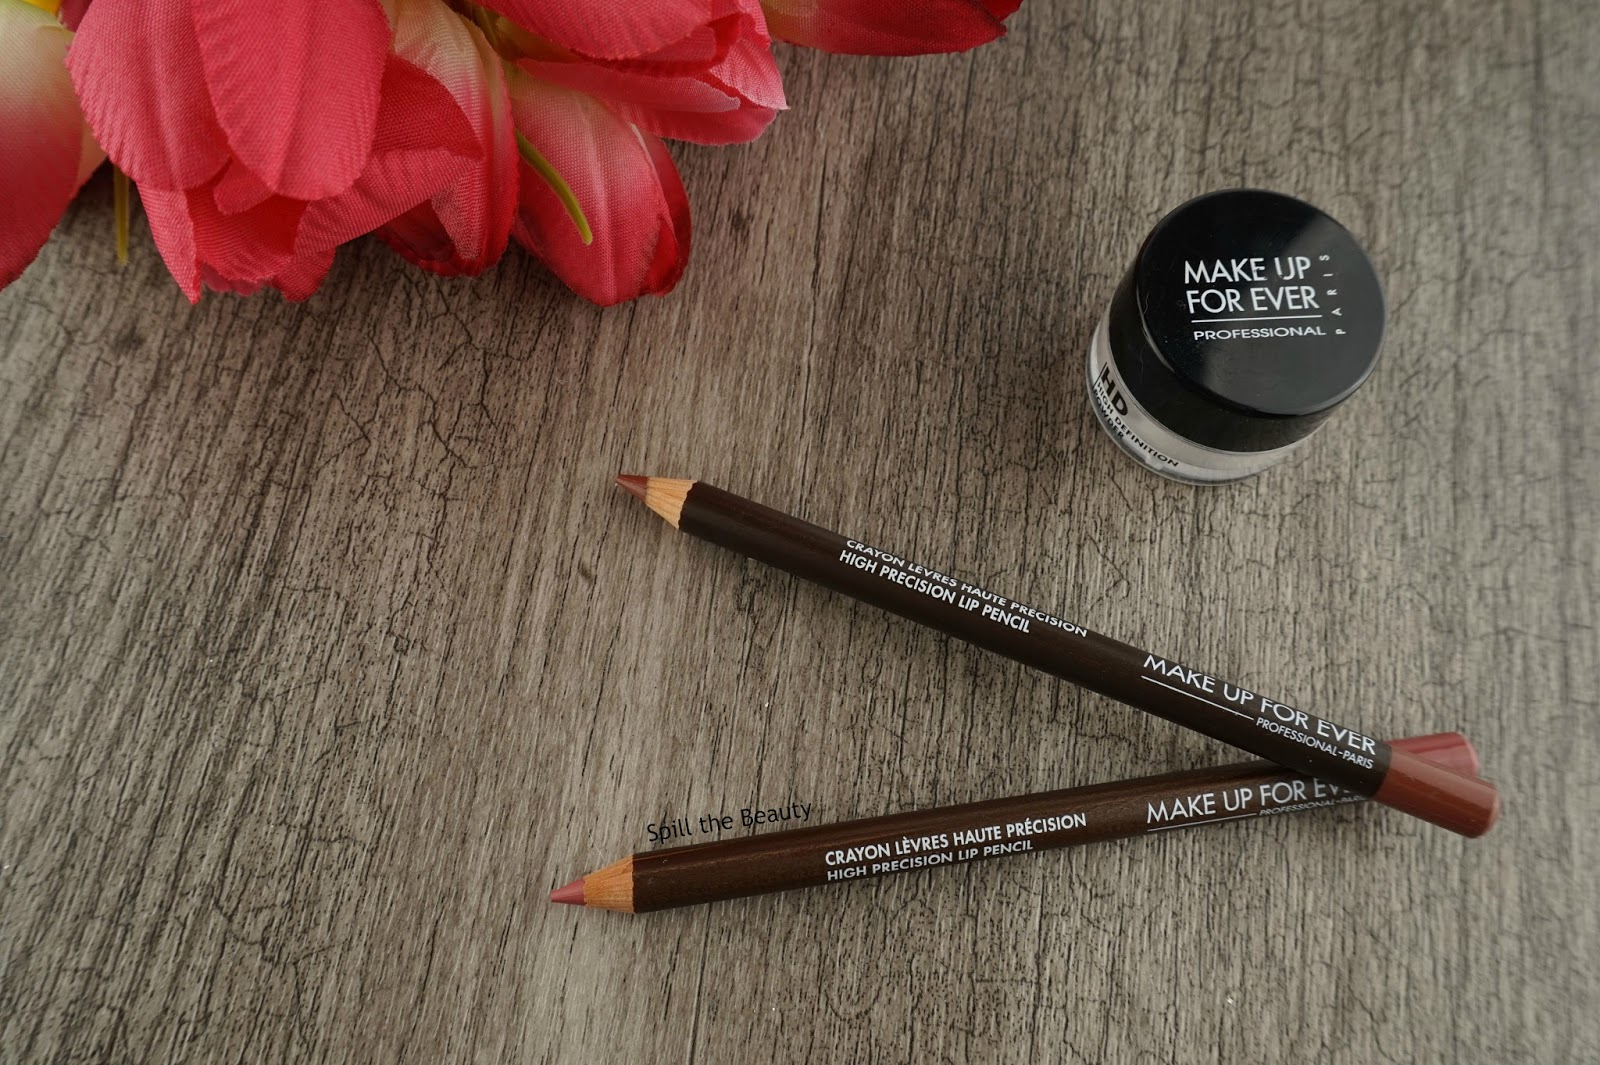 MAKE UP FOR EVER High Precision Lip Pencil – Review, Swatches, Looks